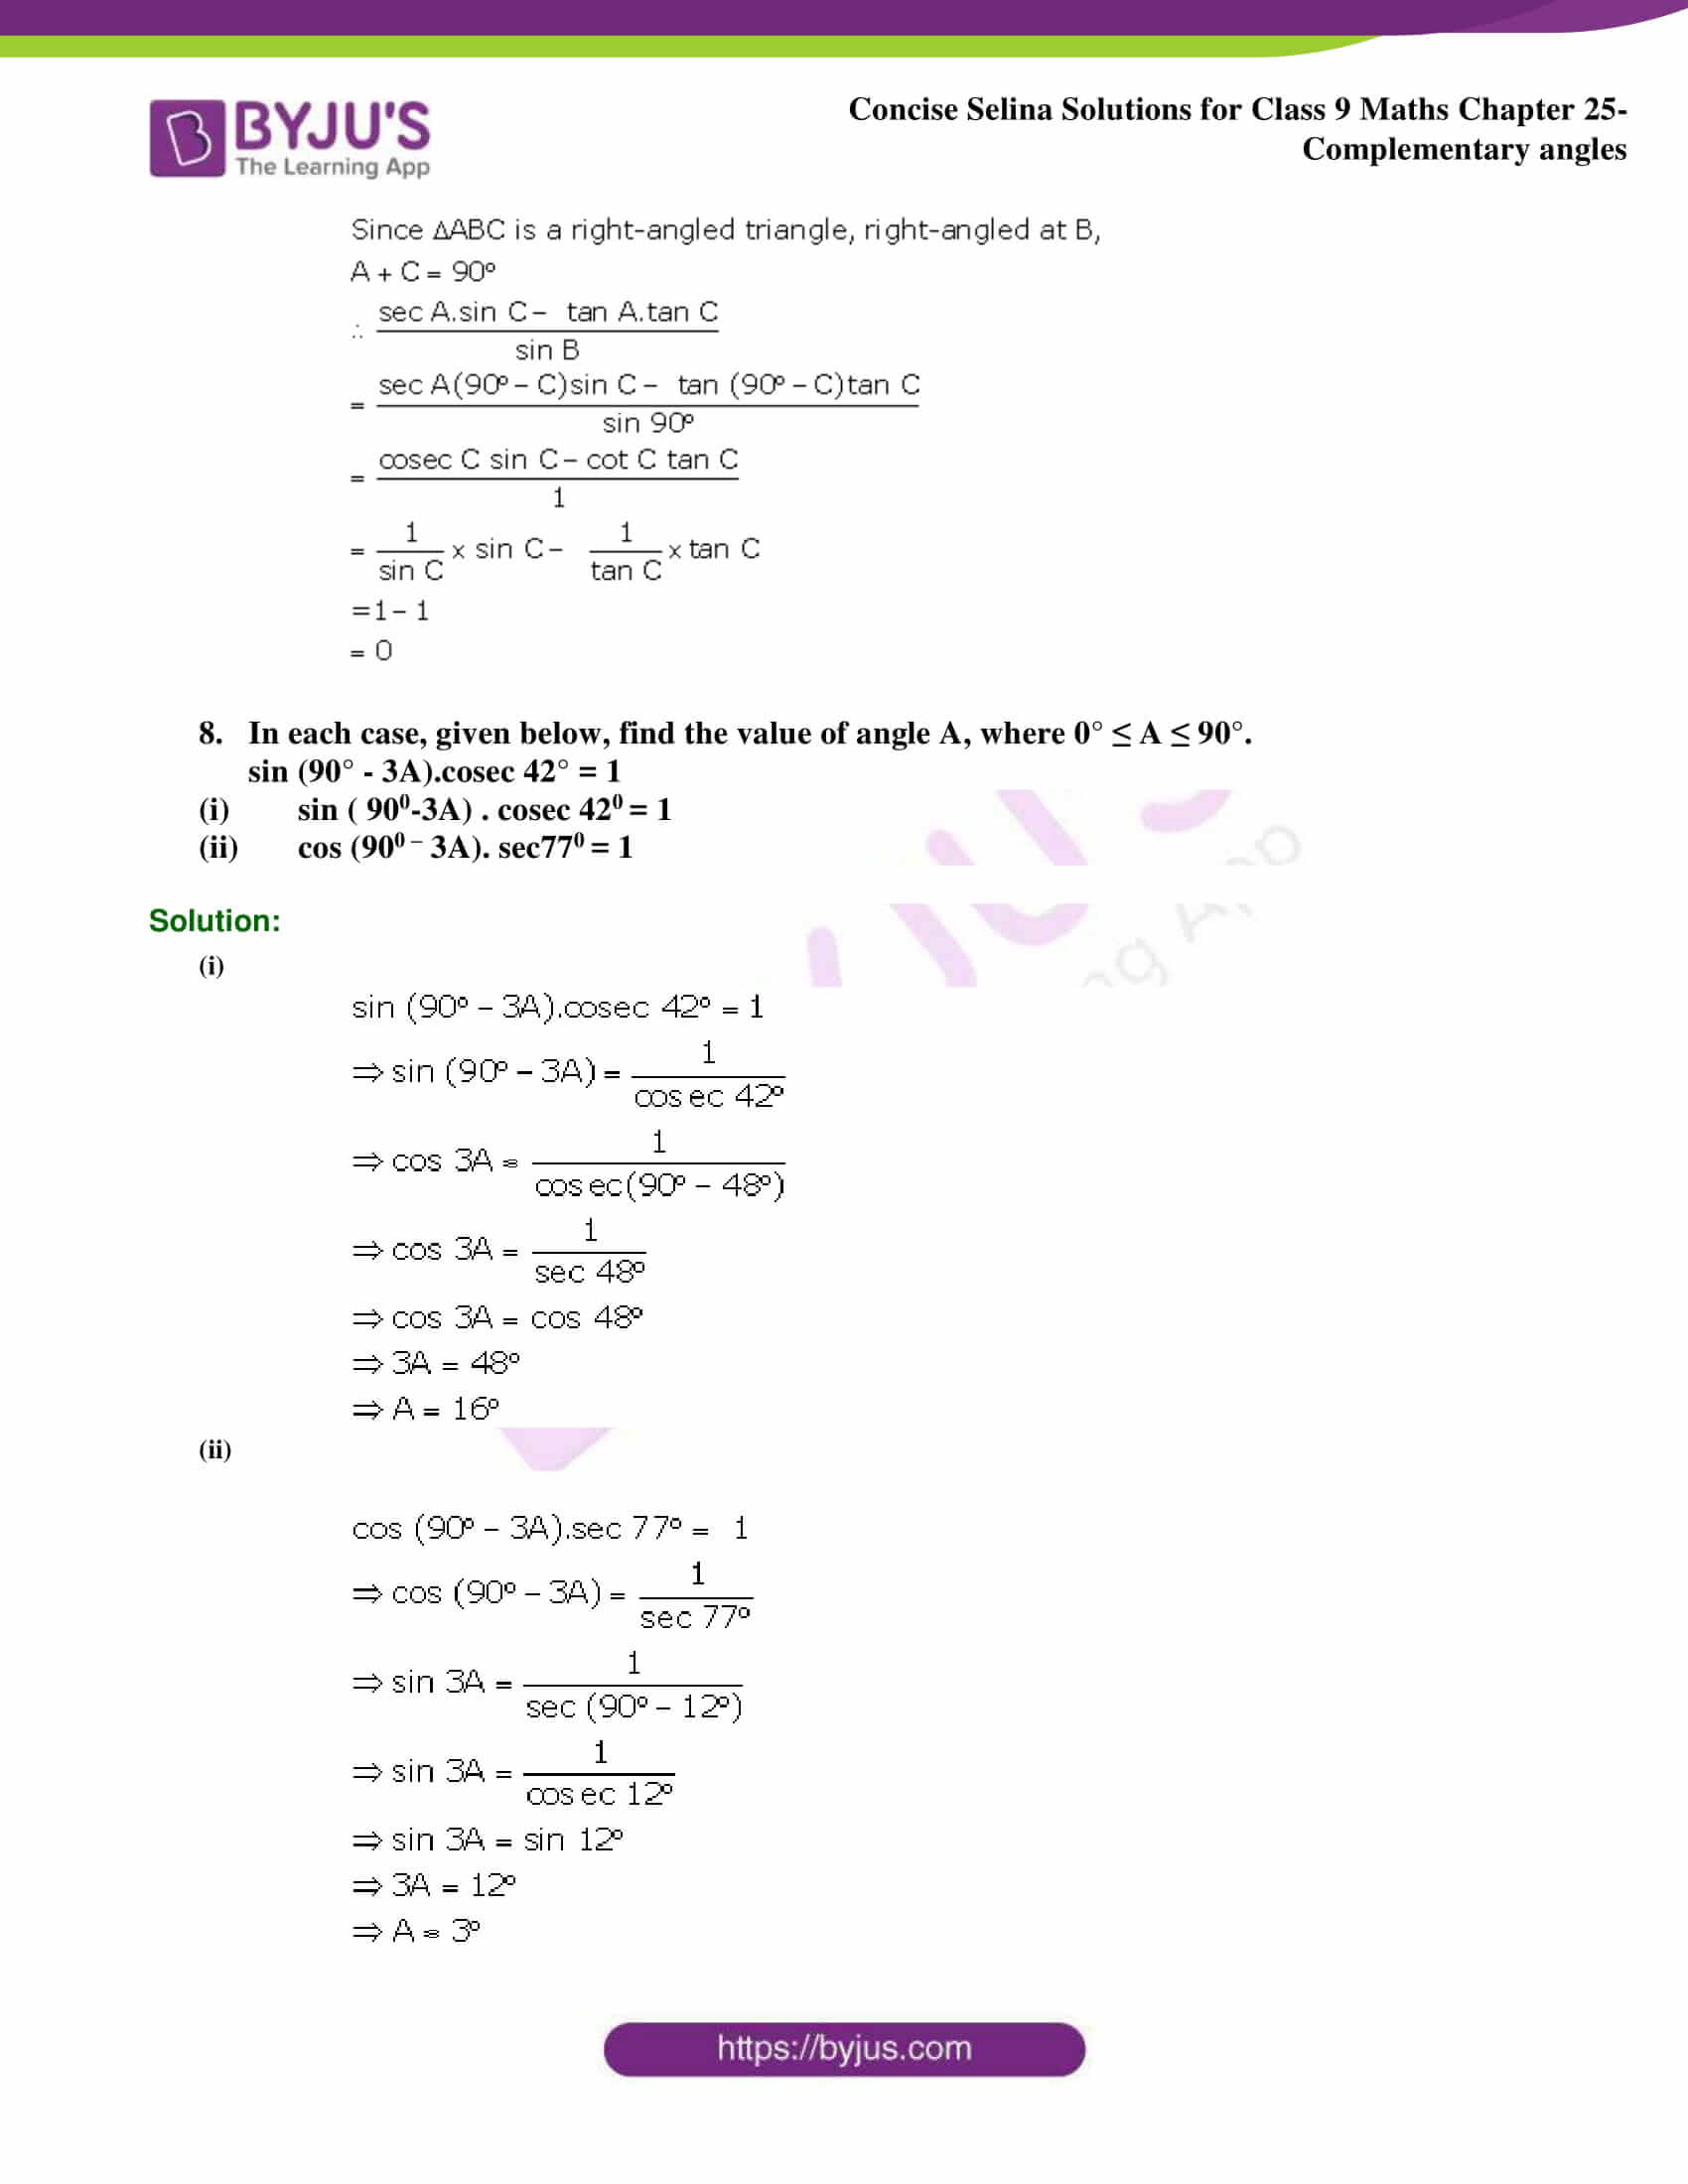 Concise Selina Solutions Class 9 Maths Chapter 25 Complementary Angles part 8